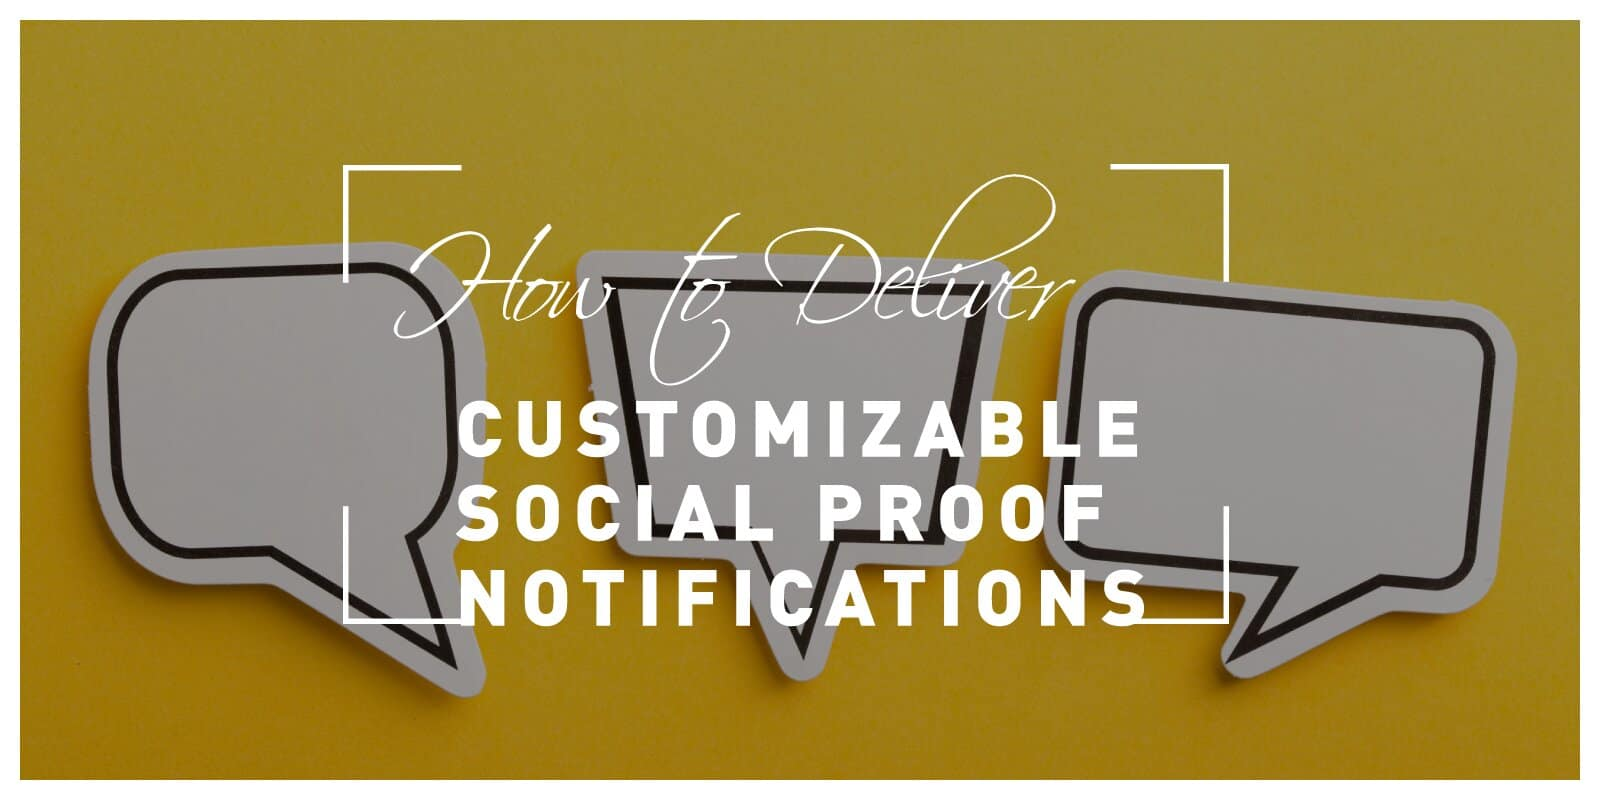 How to Deliver Customizable Social Proof Notifications